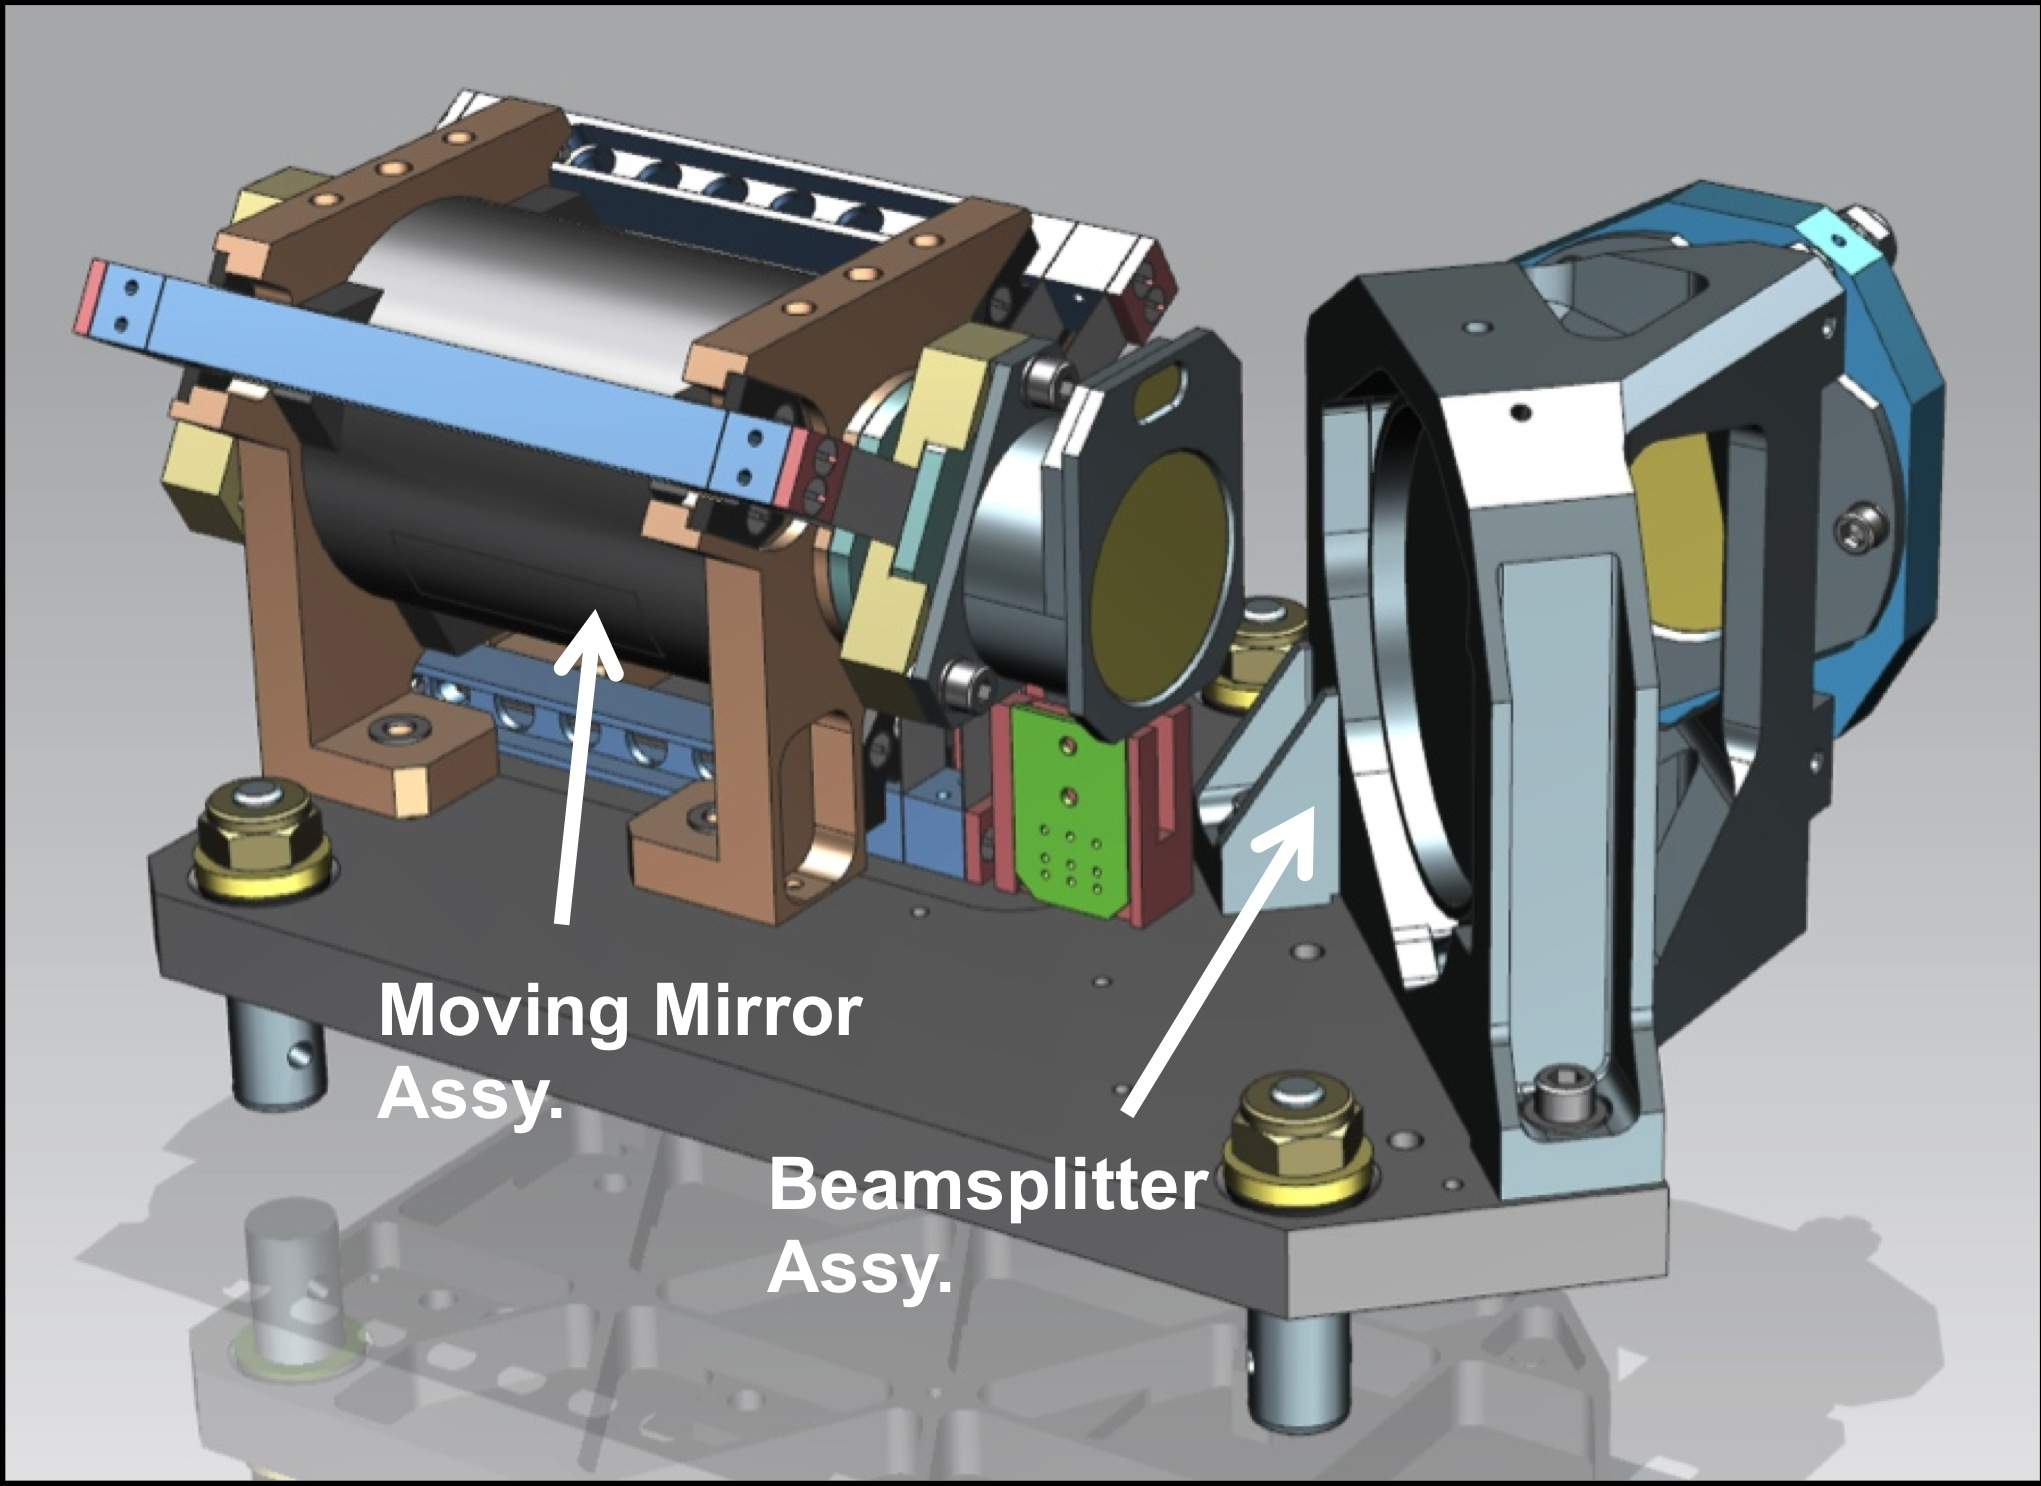 Drawing showing the relative positions of the beamsplitter and moving mirror assemblies (i.e., the interferometer)